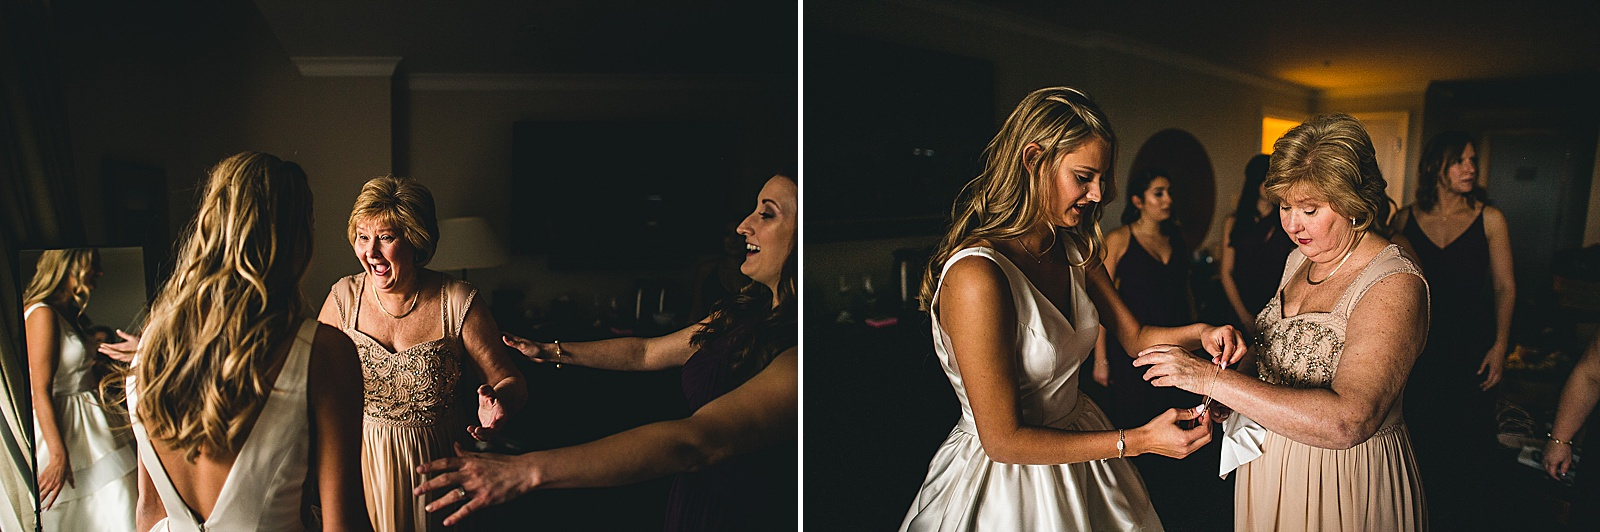 15 bride and mom - The Glen Club Wedding Photos // Katie + Nick